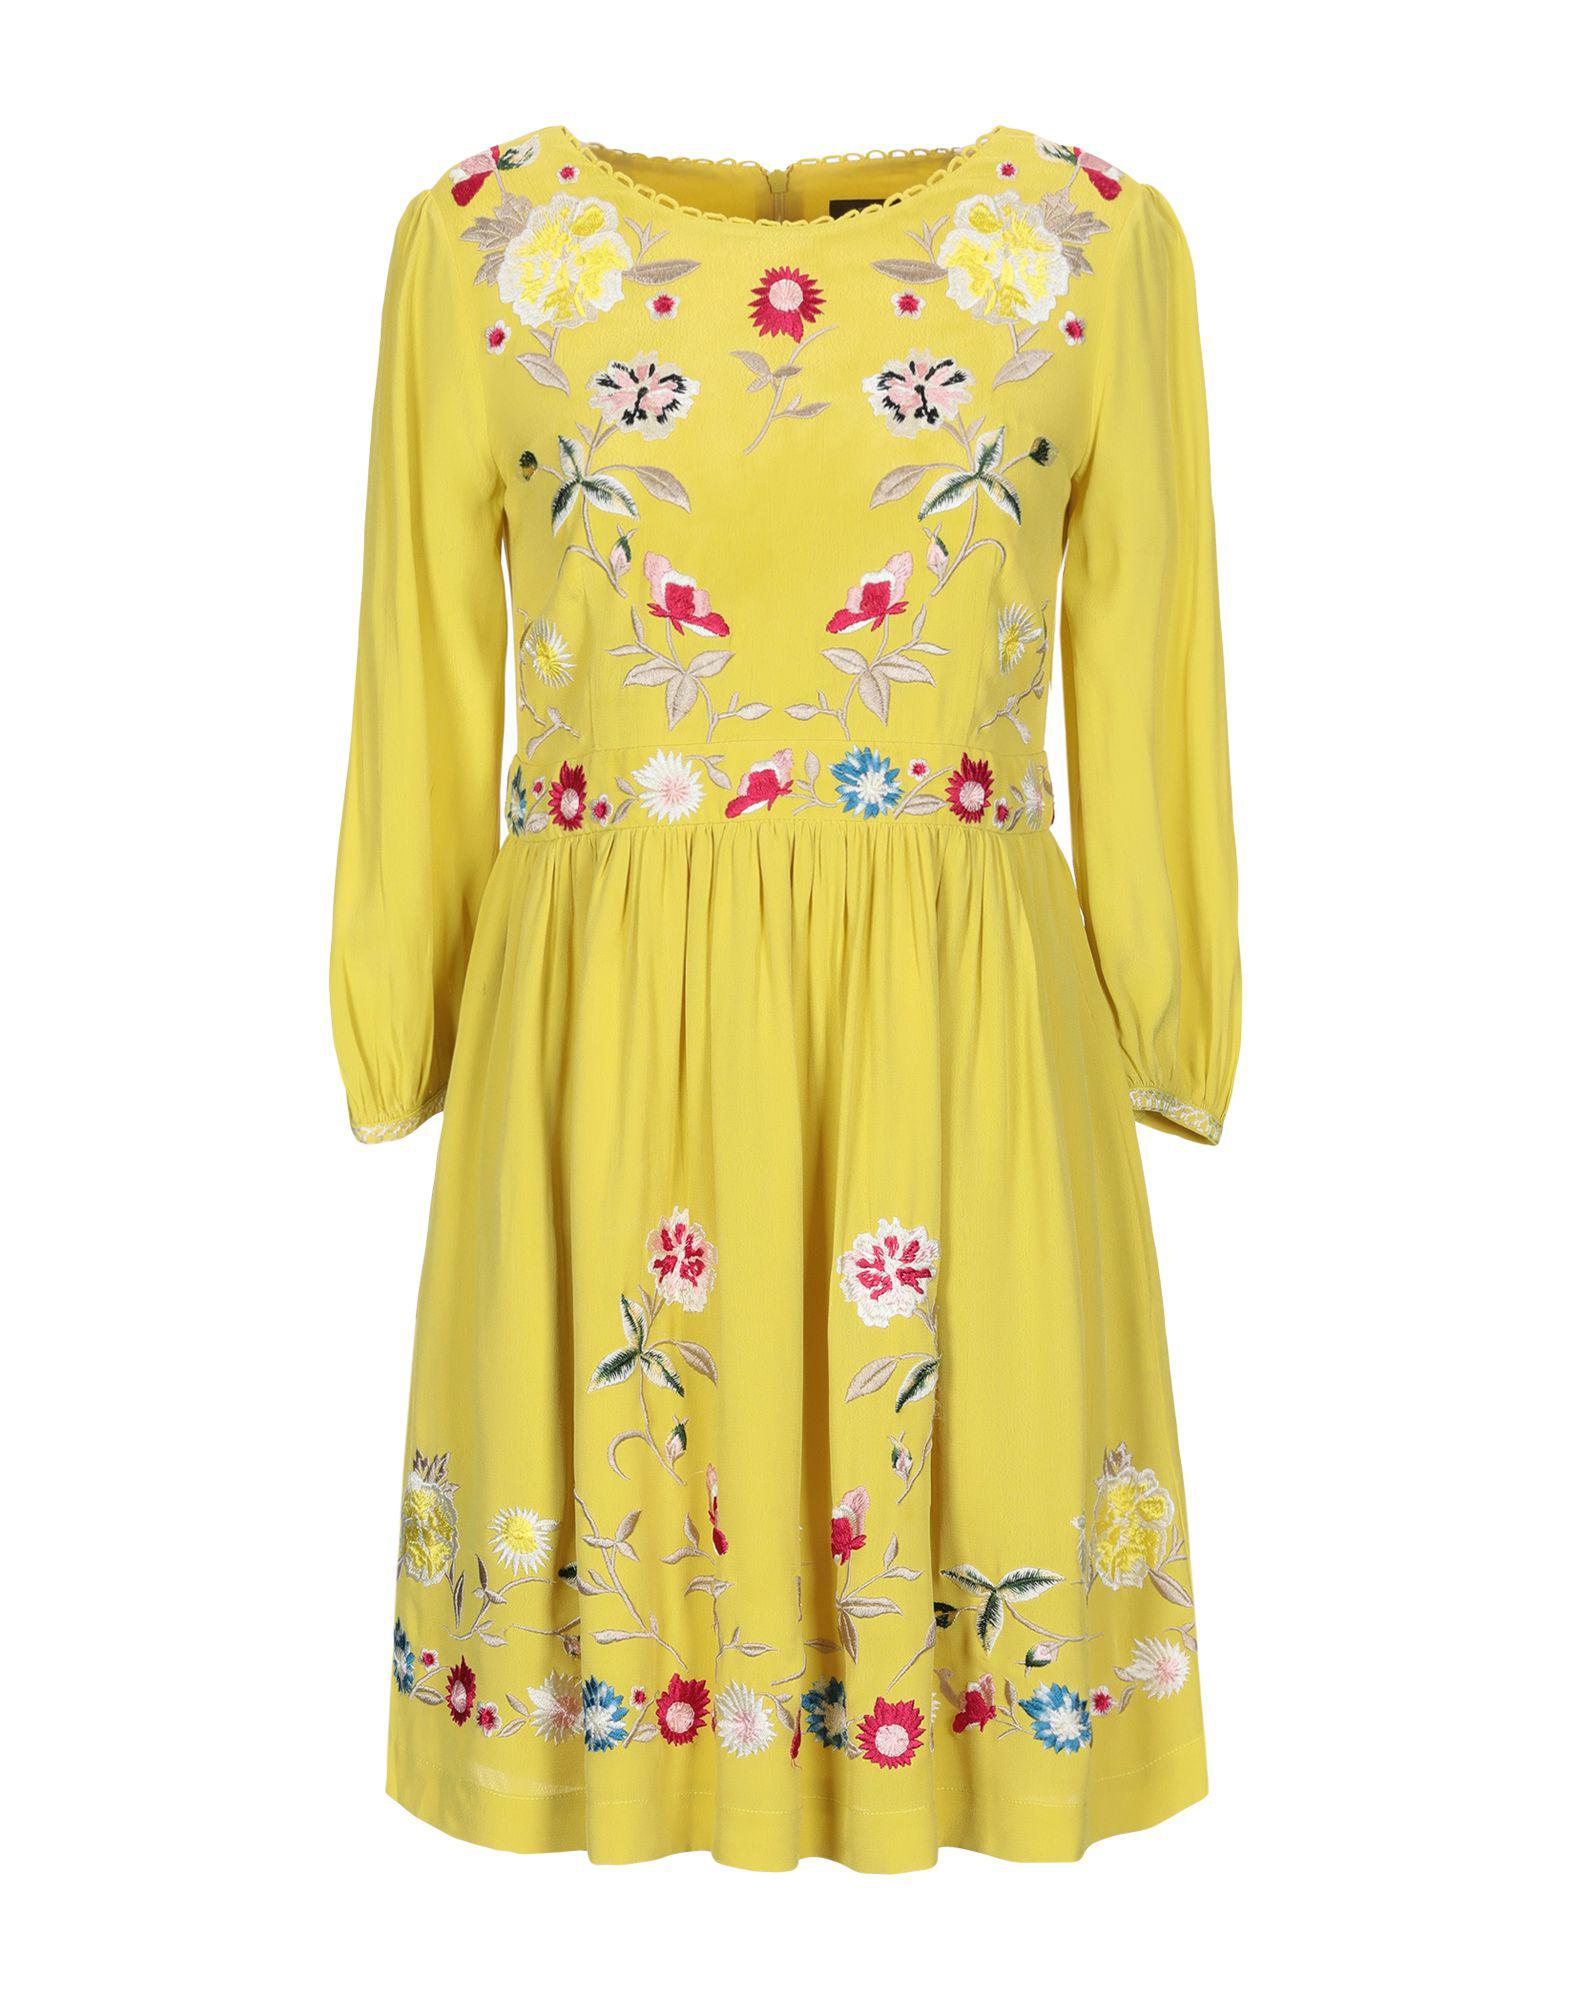 c3a365de7412 French Connection Floral Embroidered Mini Dress in Yellow - Save 14 ...